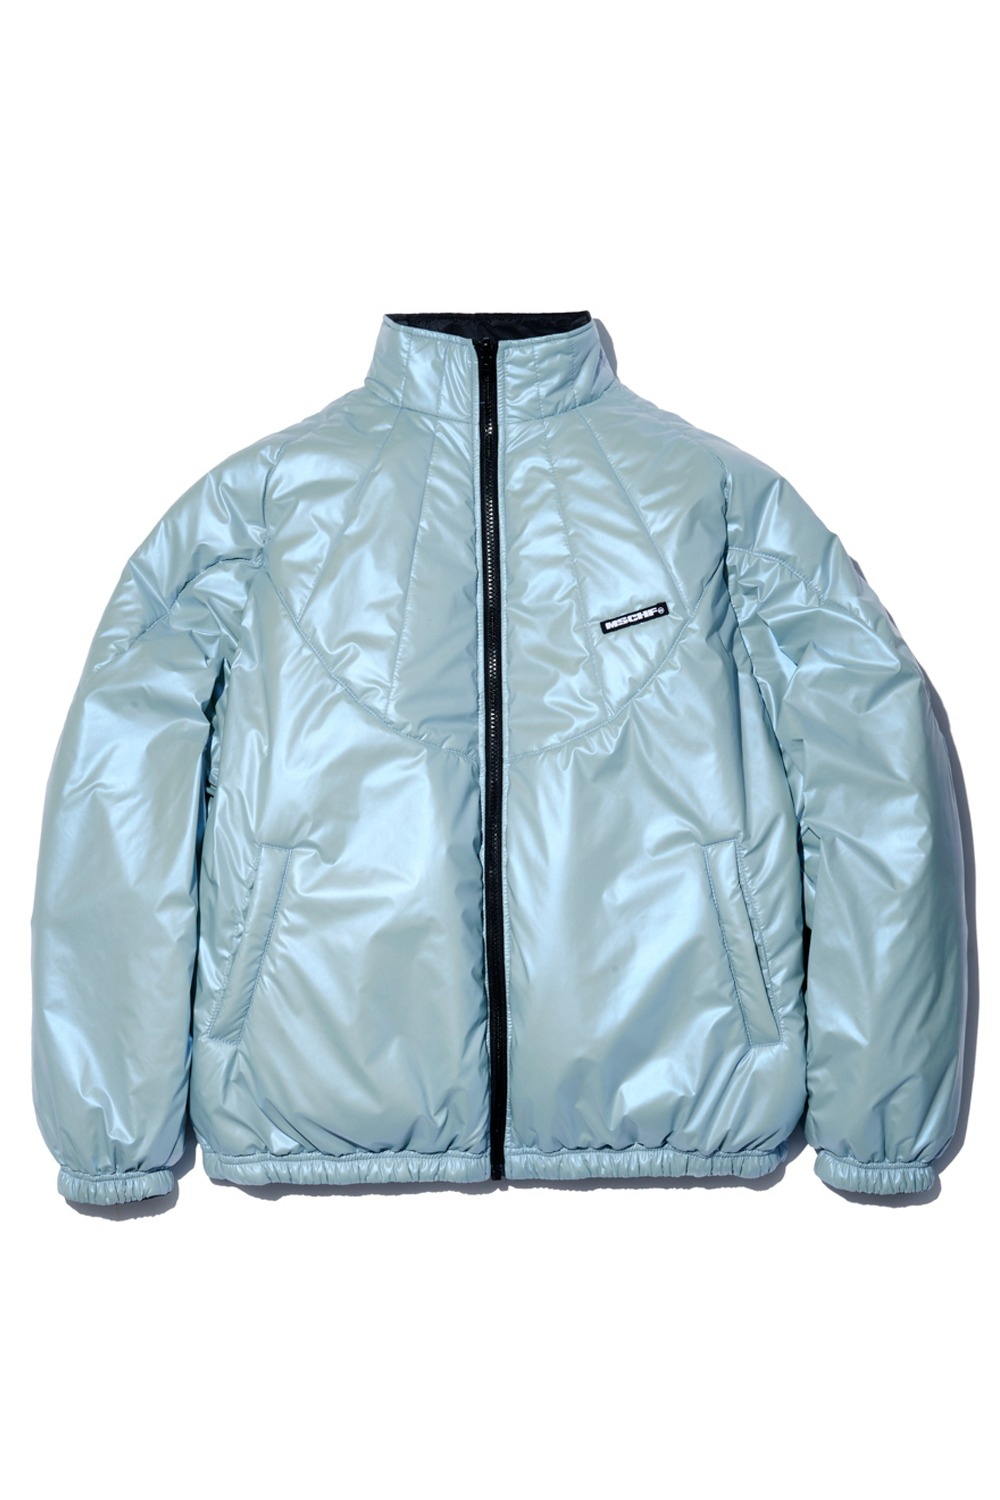 MORPHO REVERSIBLE JACKET_iridescent sky blue/iron